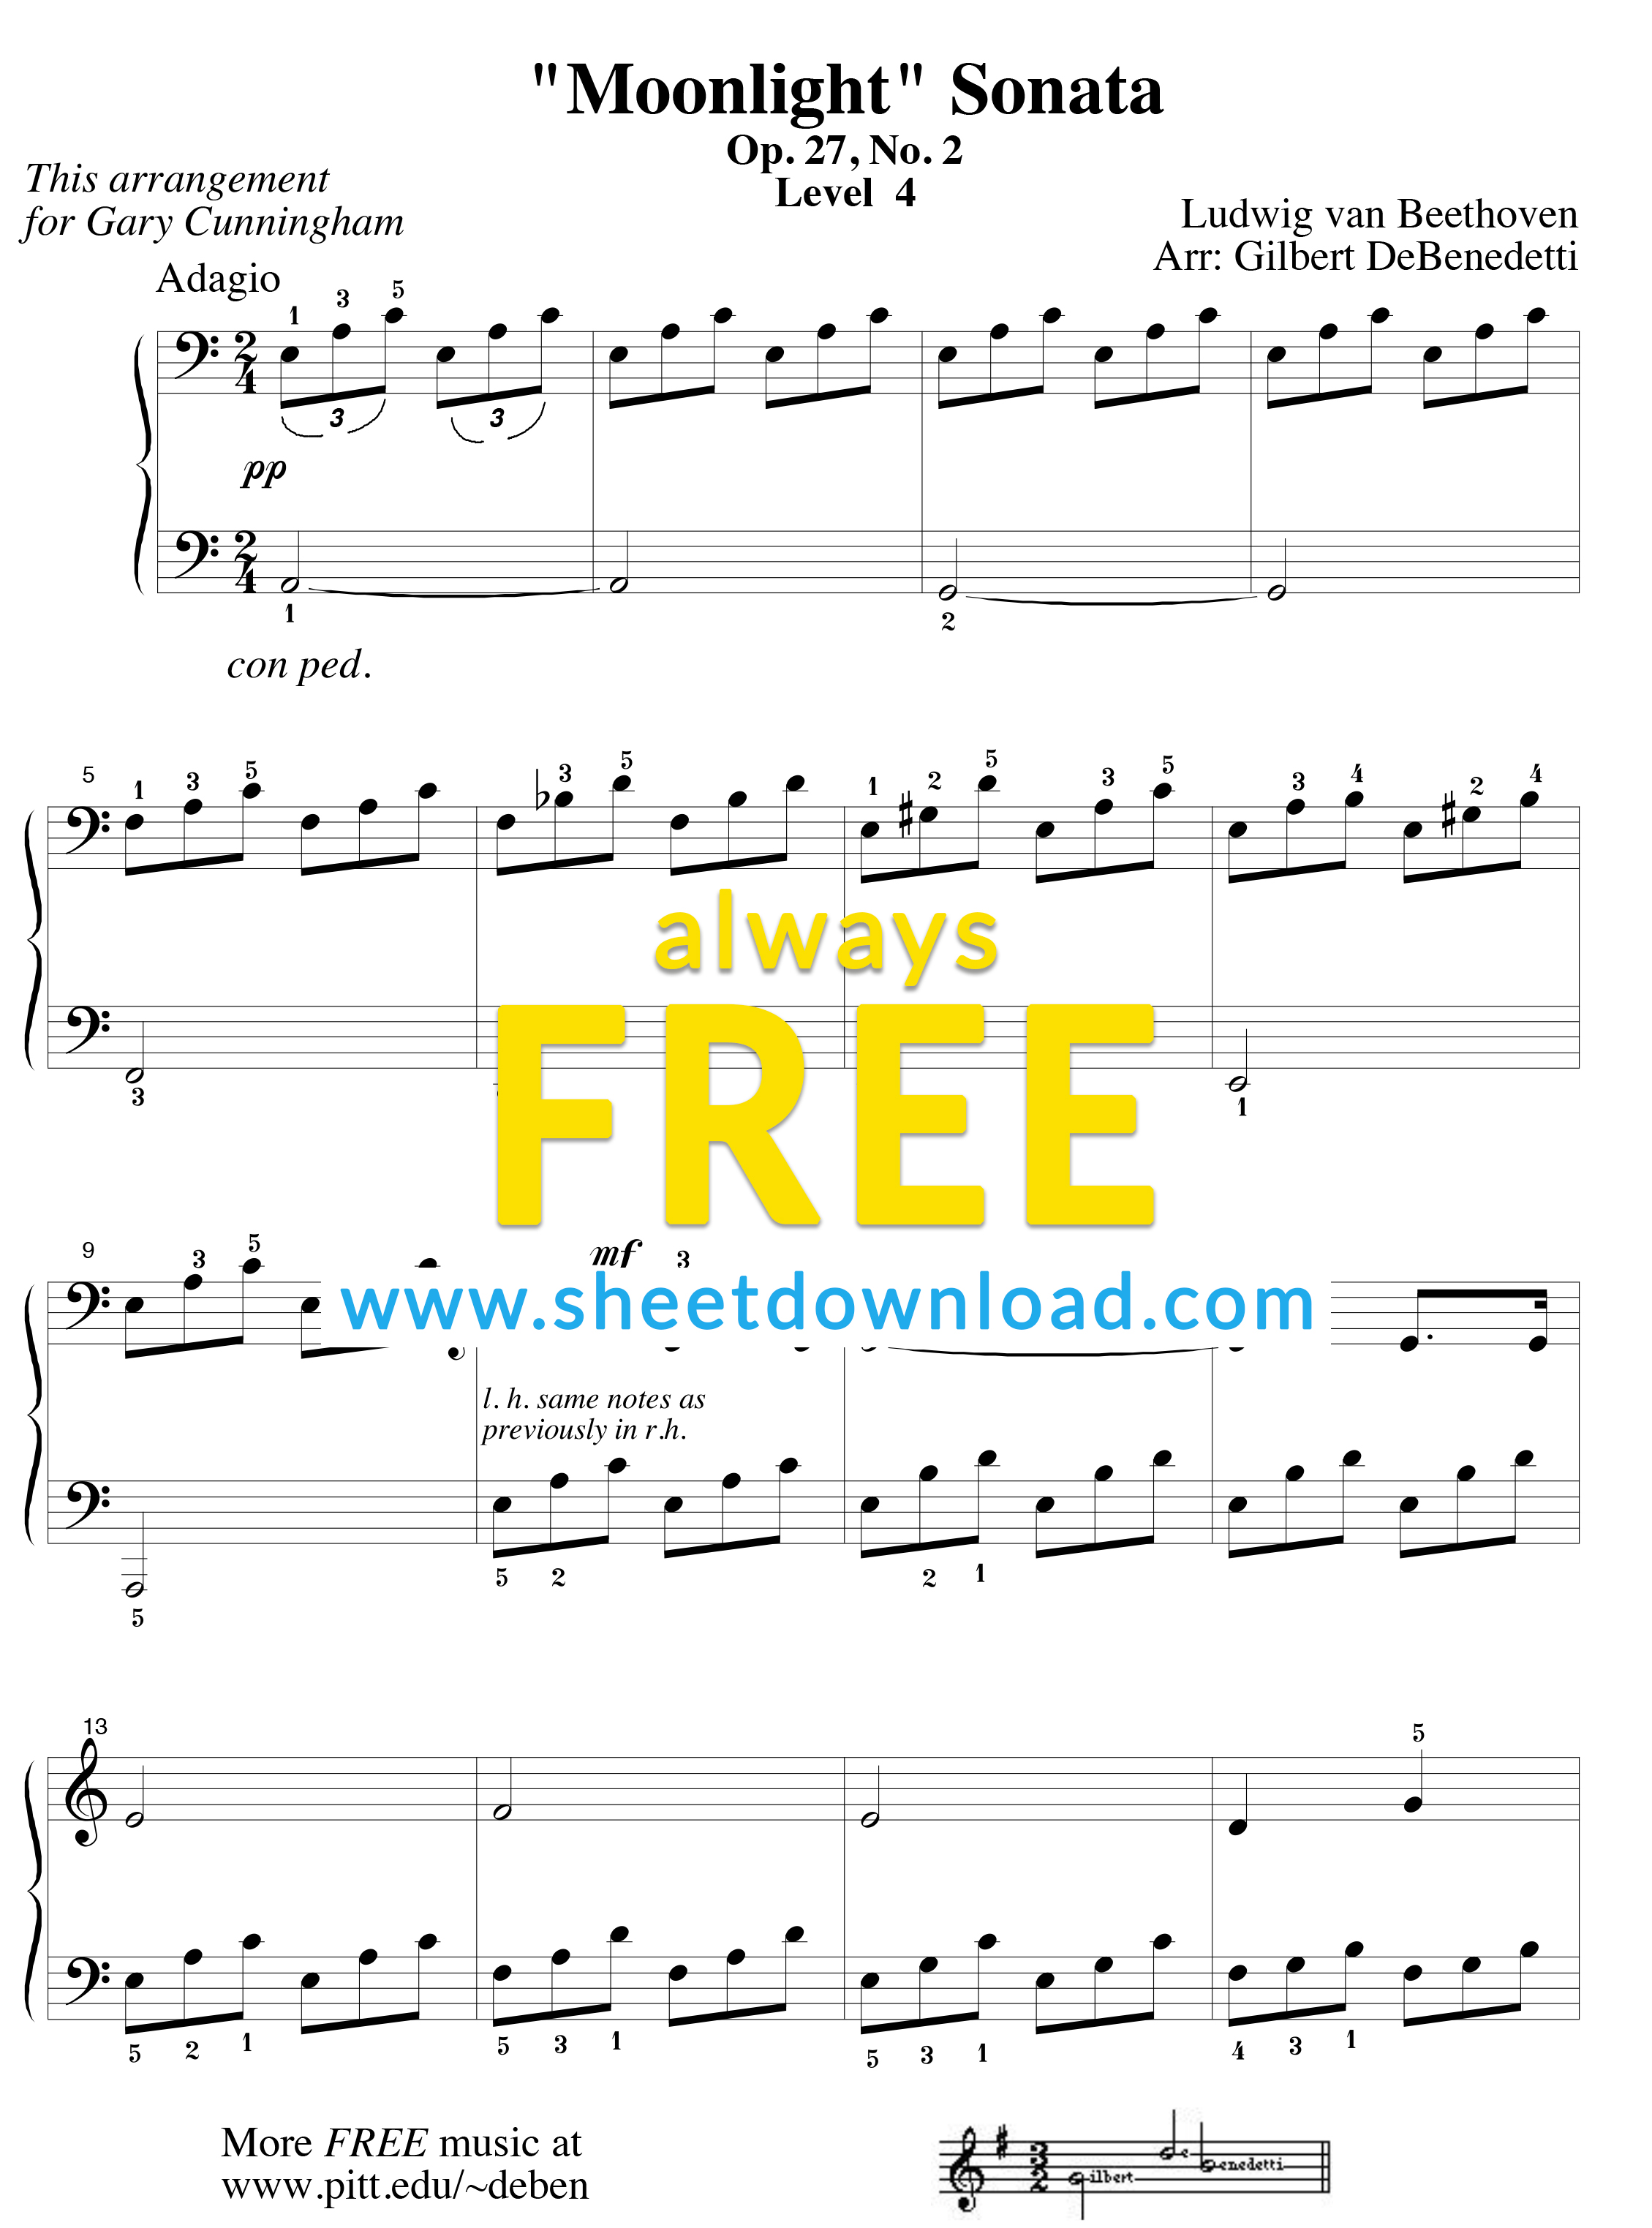 Top 100 Popular Piano Sheets Downloaded From Sheetdownload